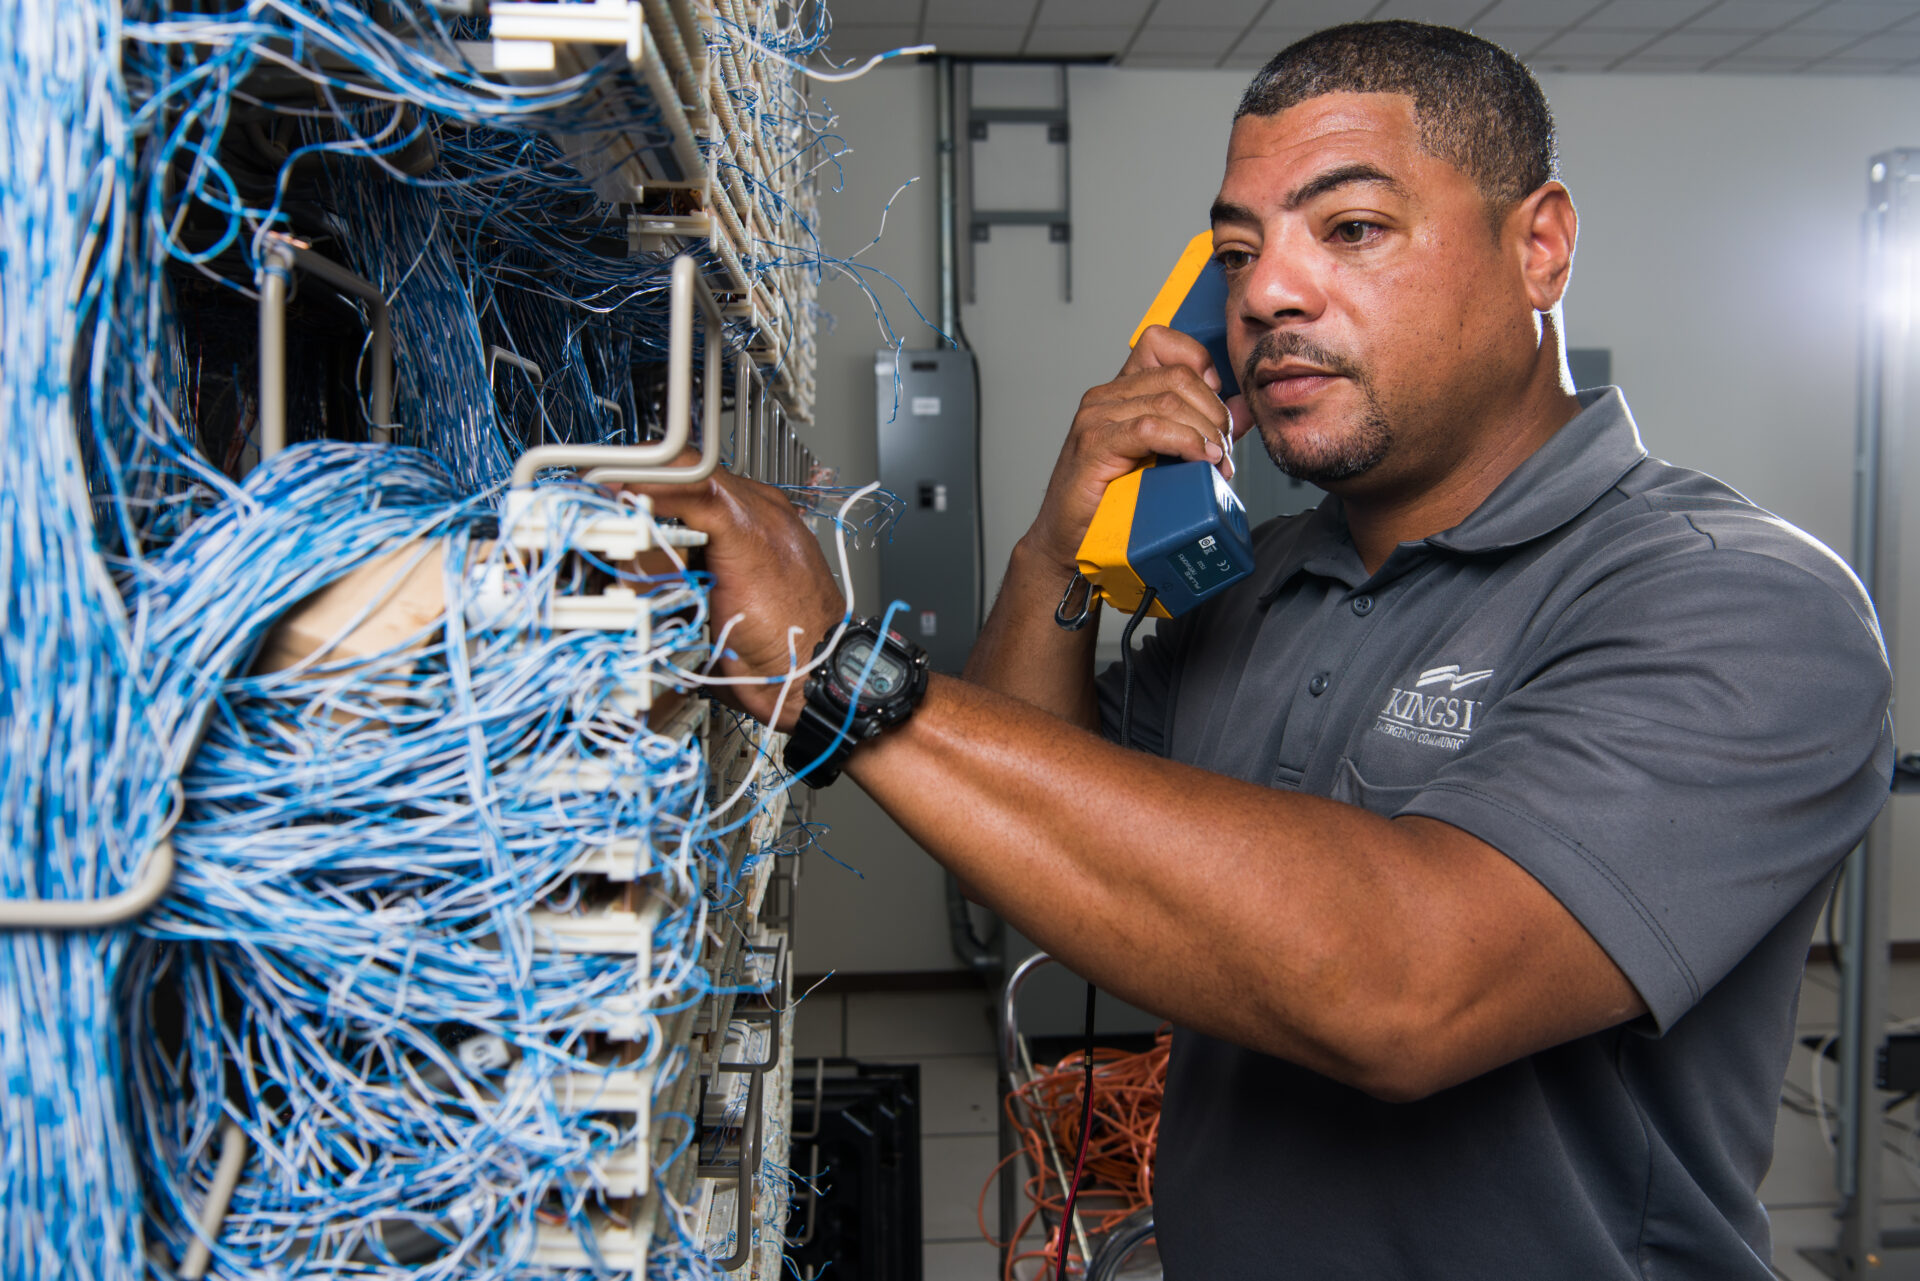 San Diego Buildin Solves Telephony Service Issues While Realizing Substantial Savings